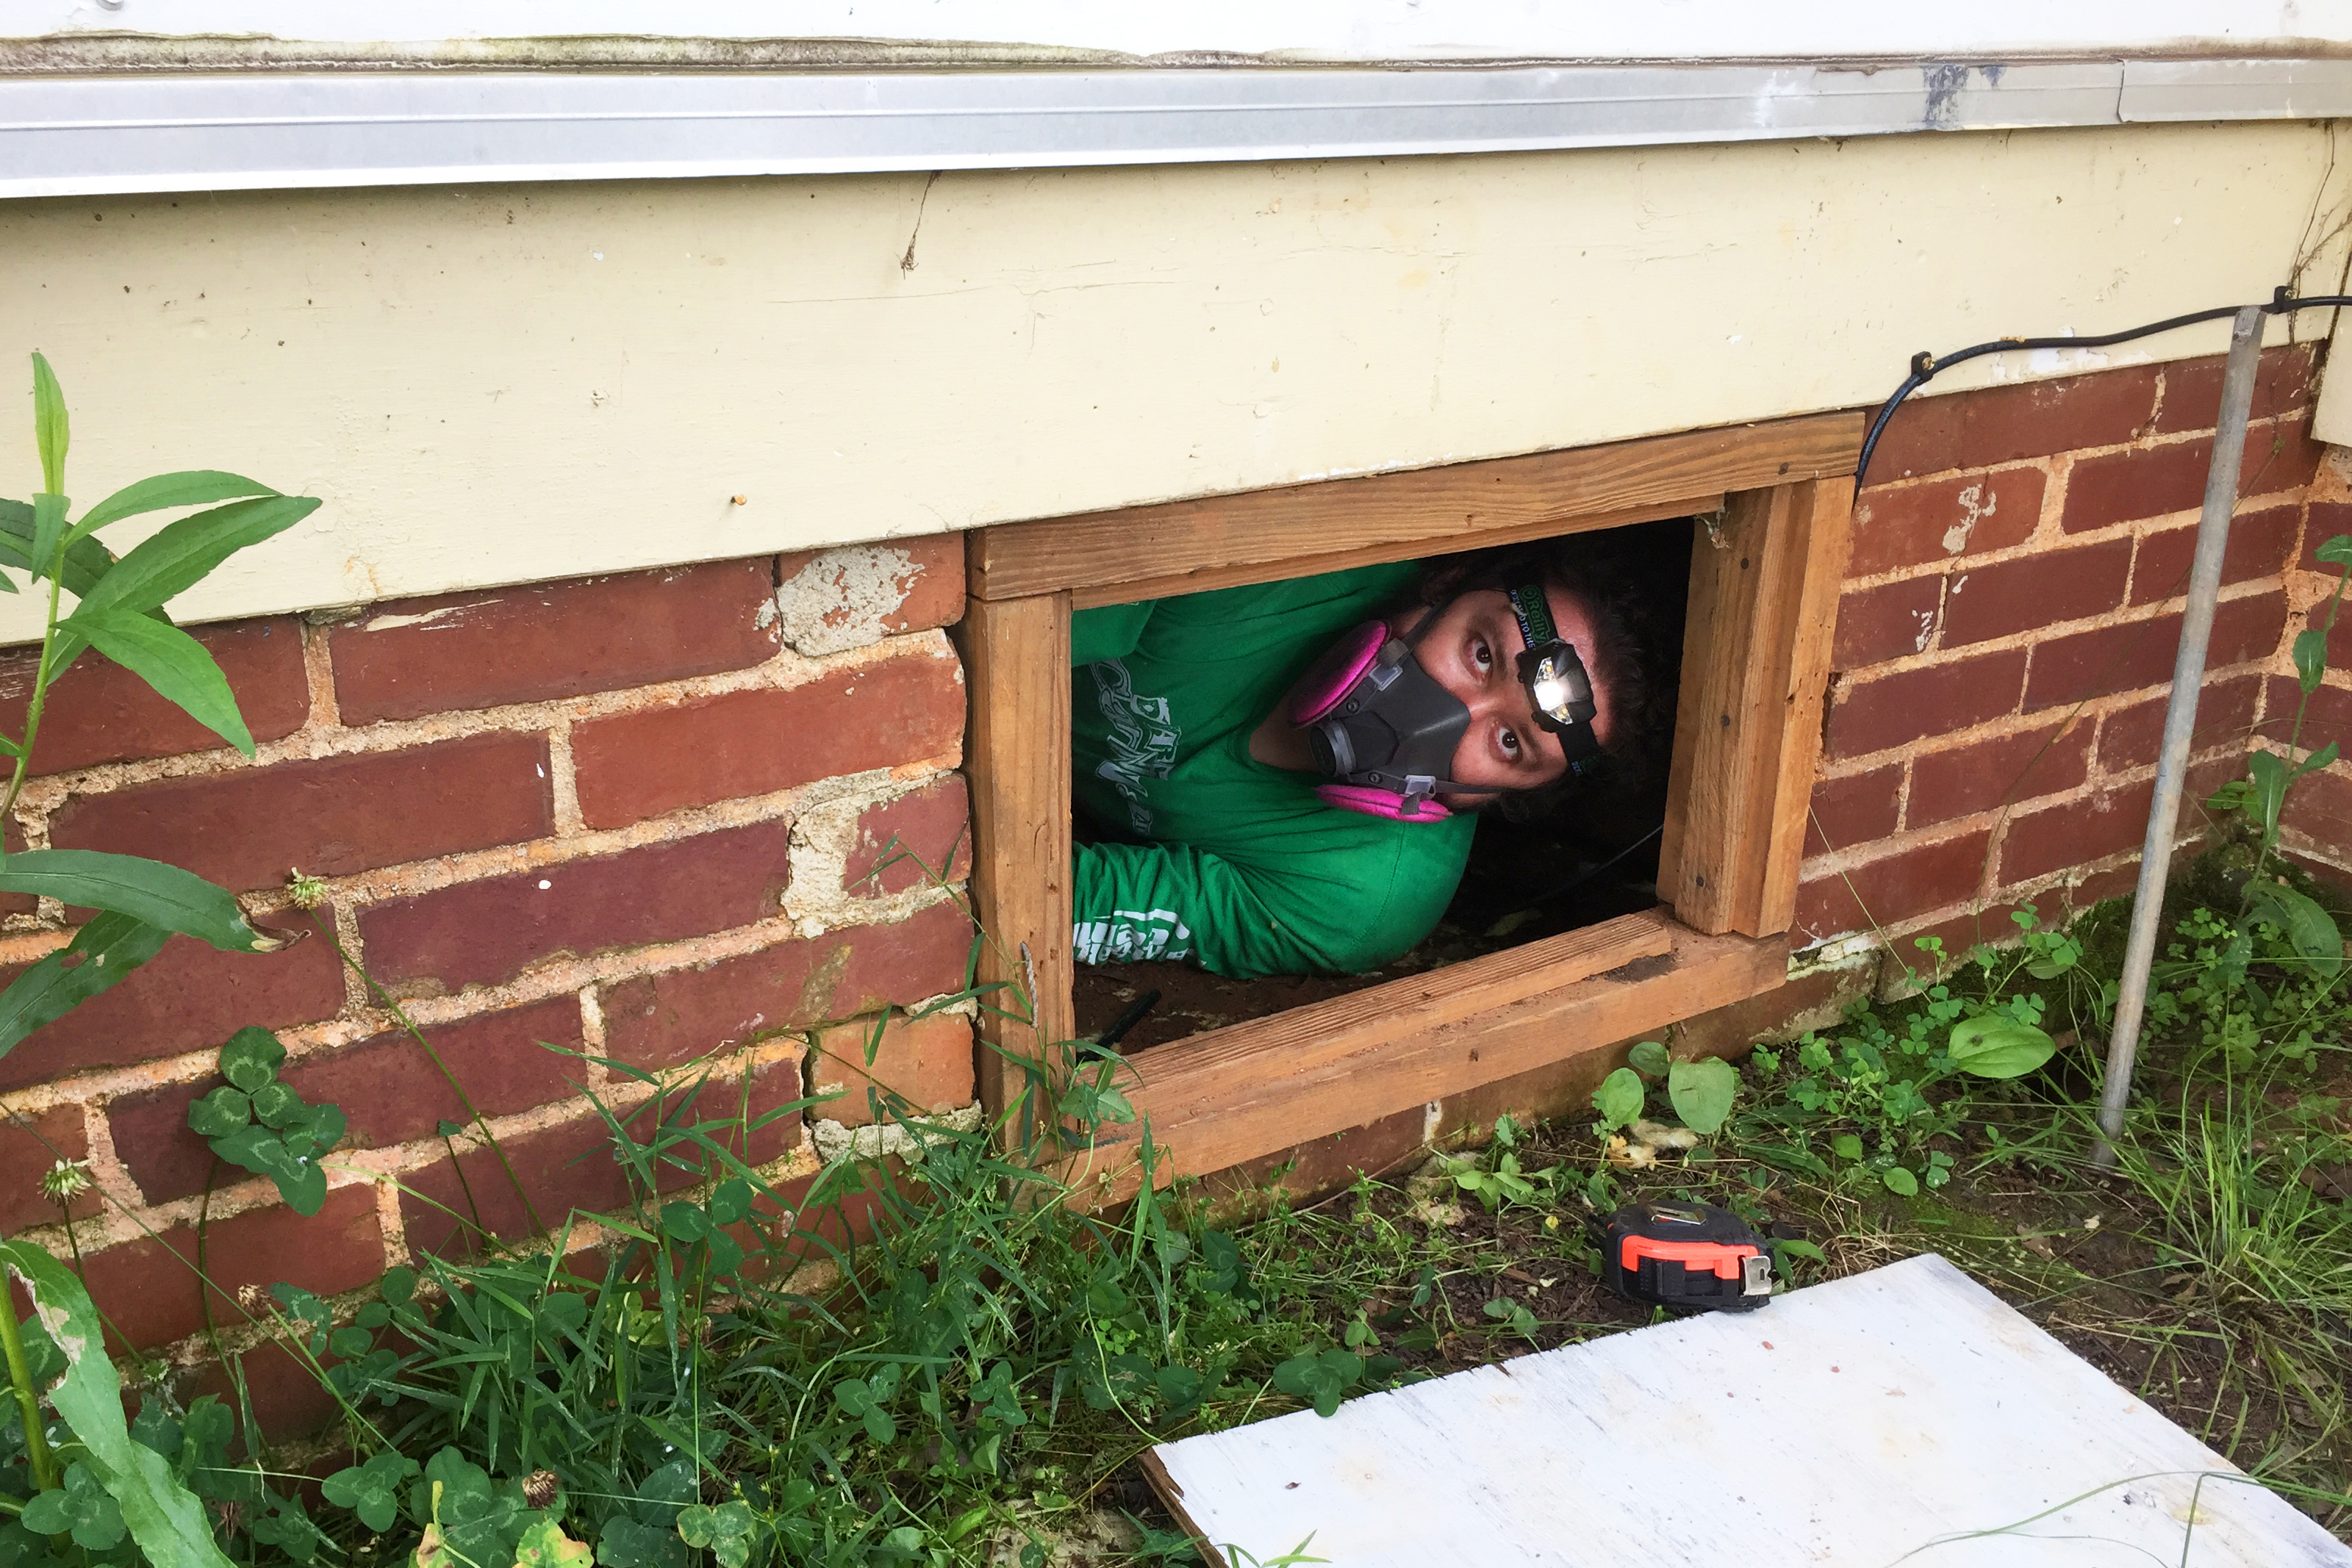 Man with respirator mask on peering out from basement window